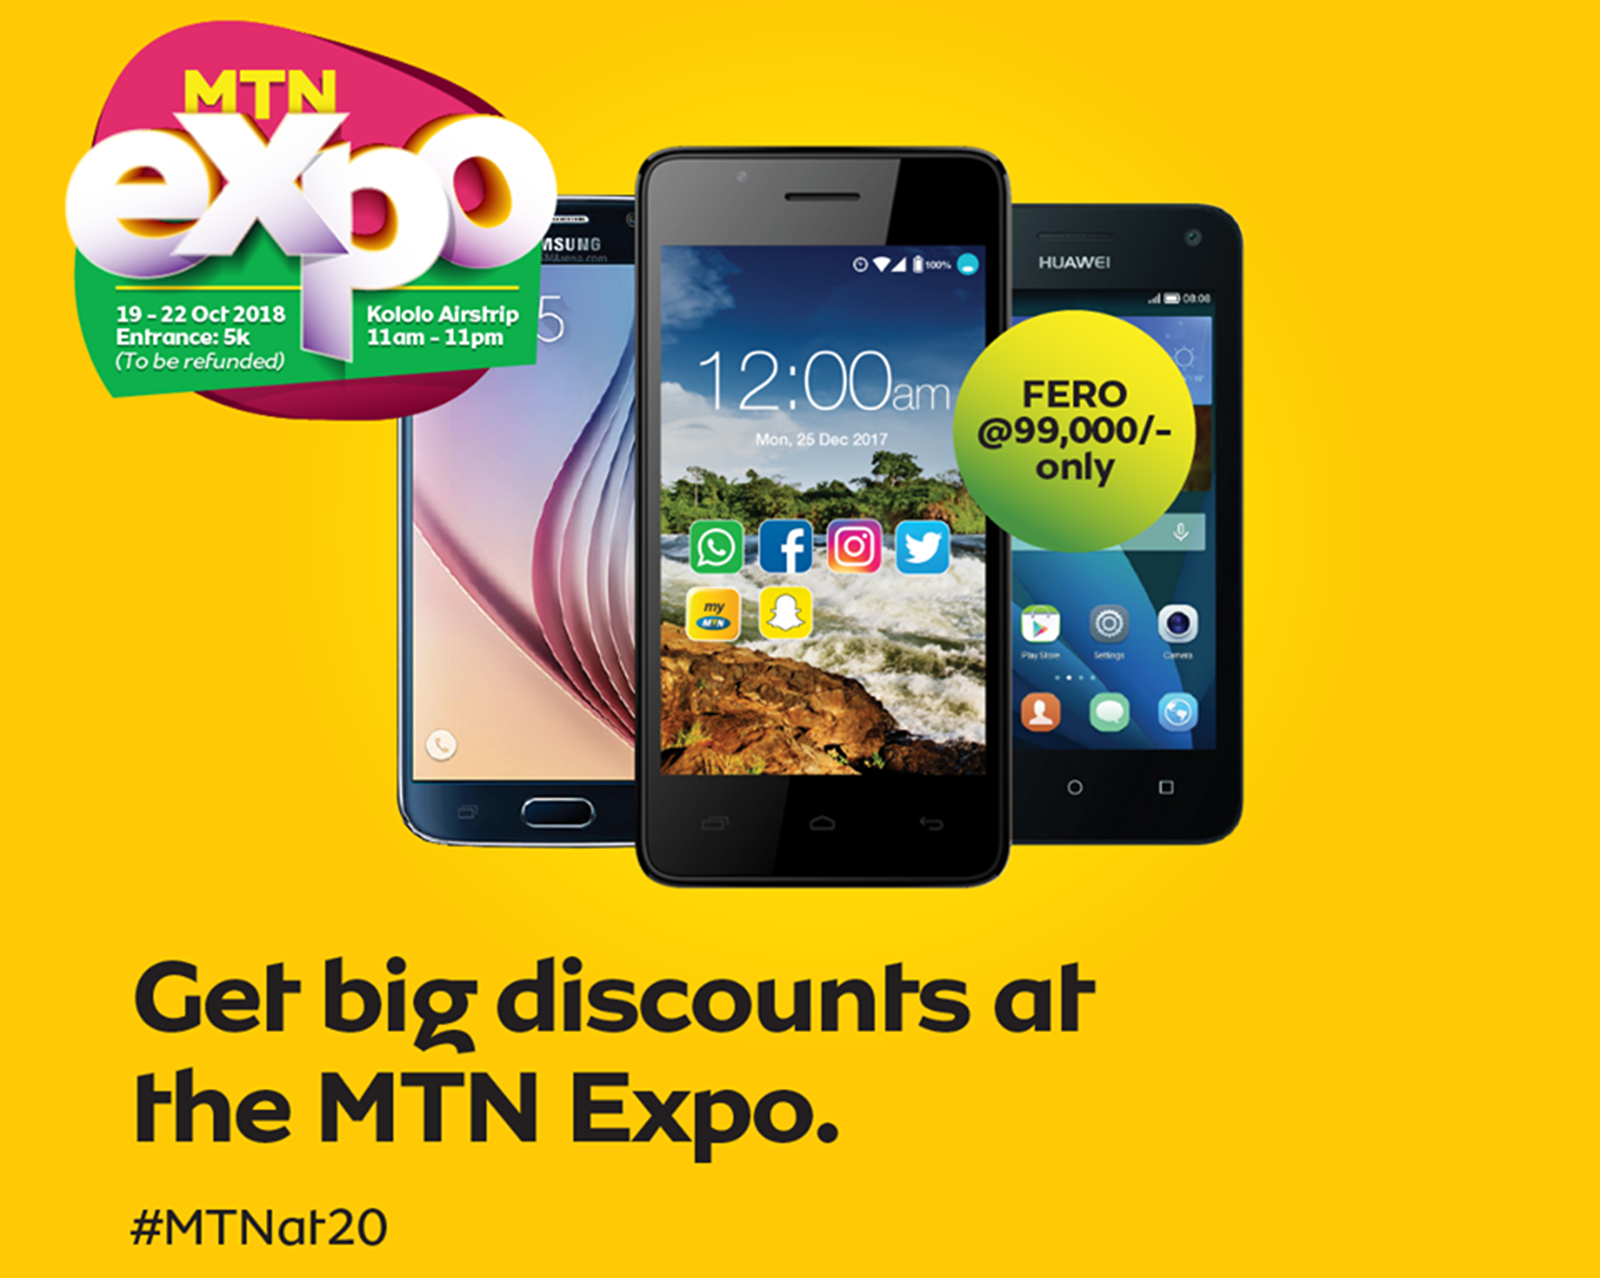 This is the full list of affordable smartphones available at the MTN